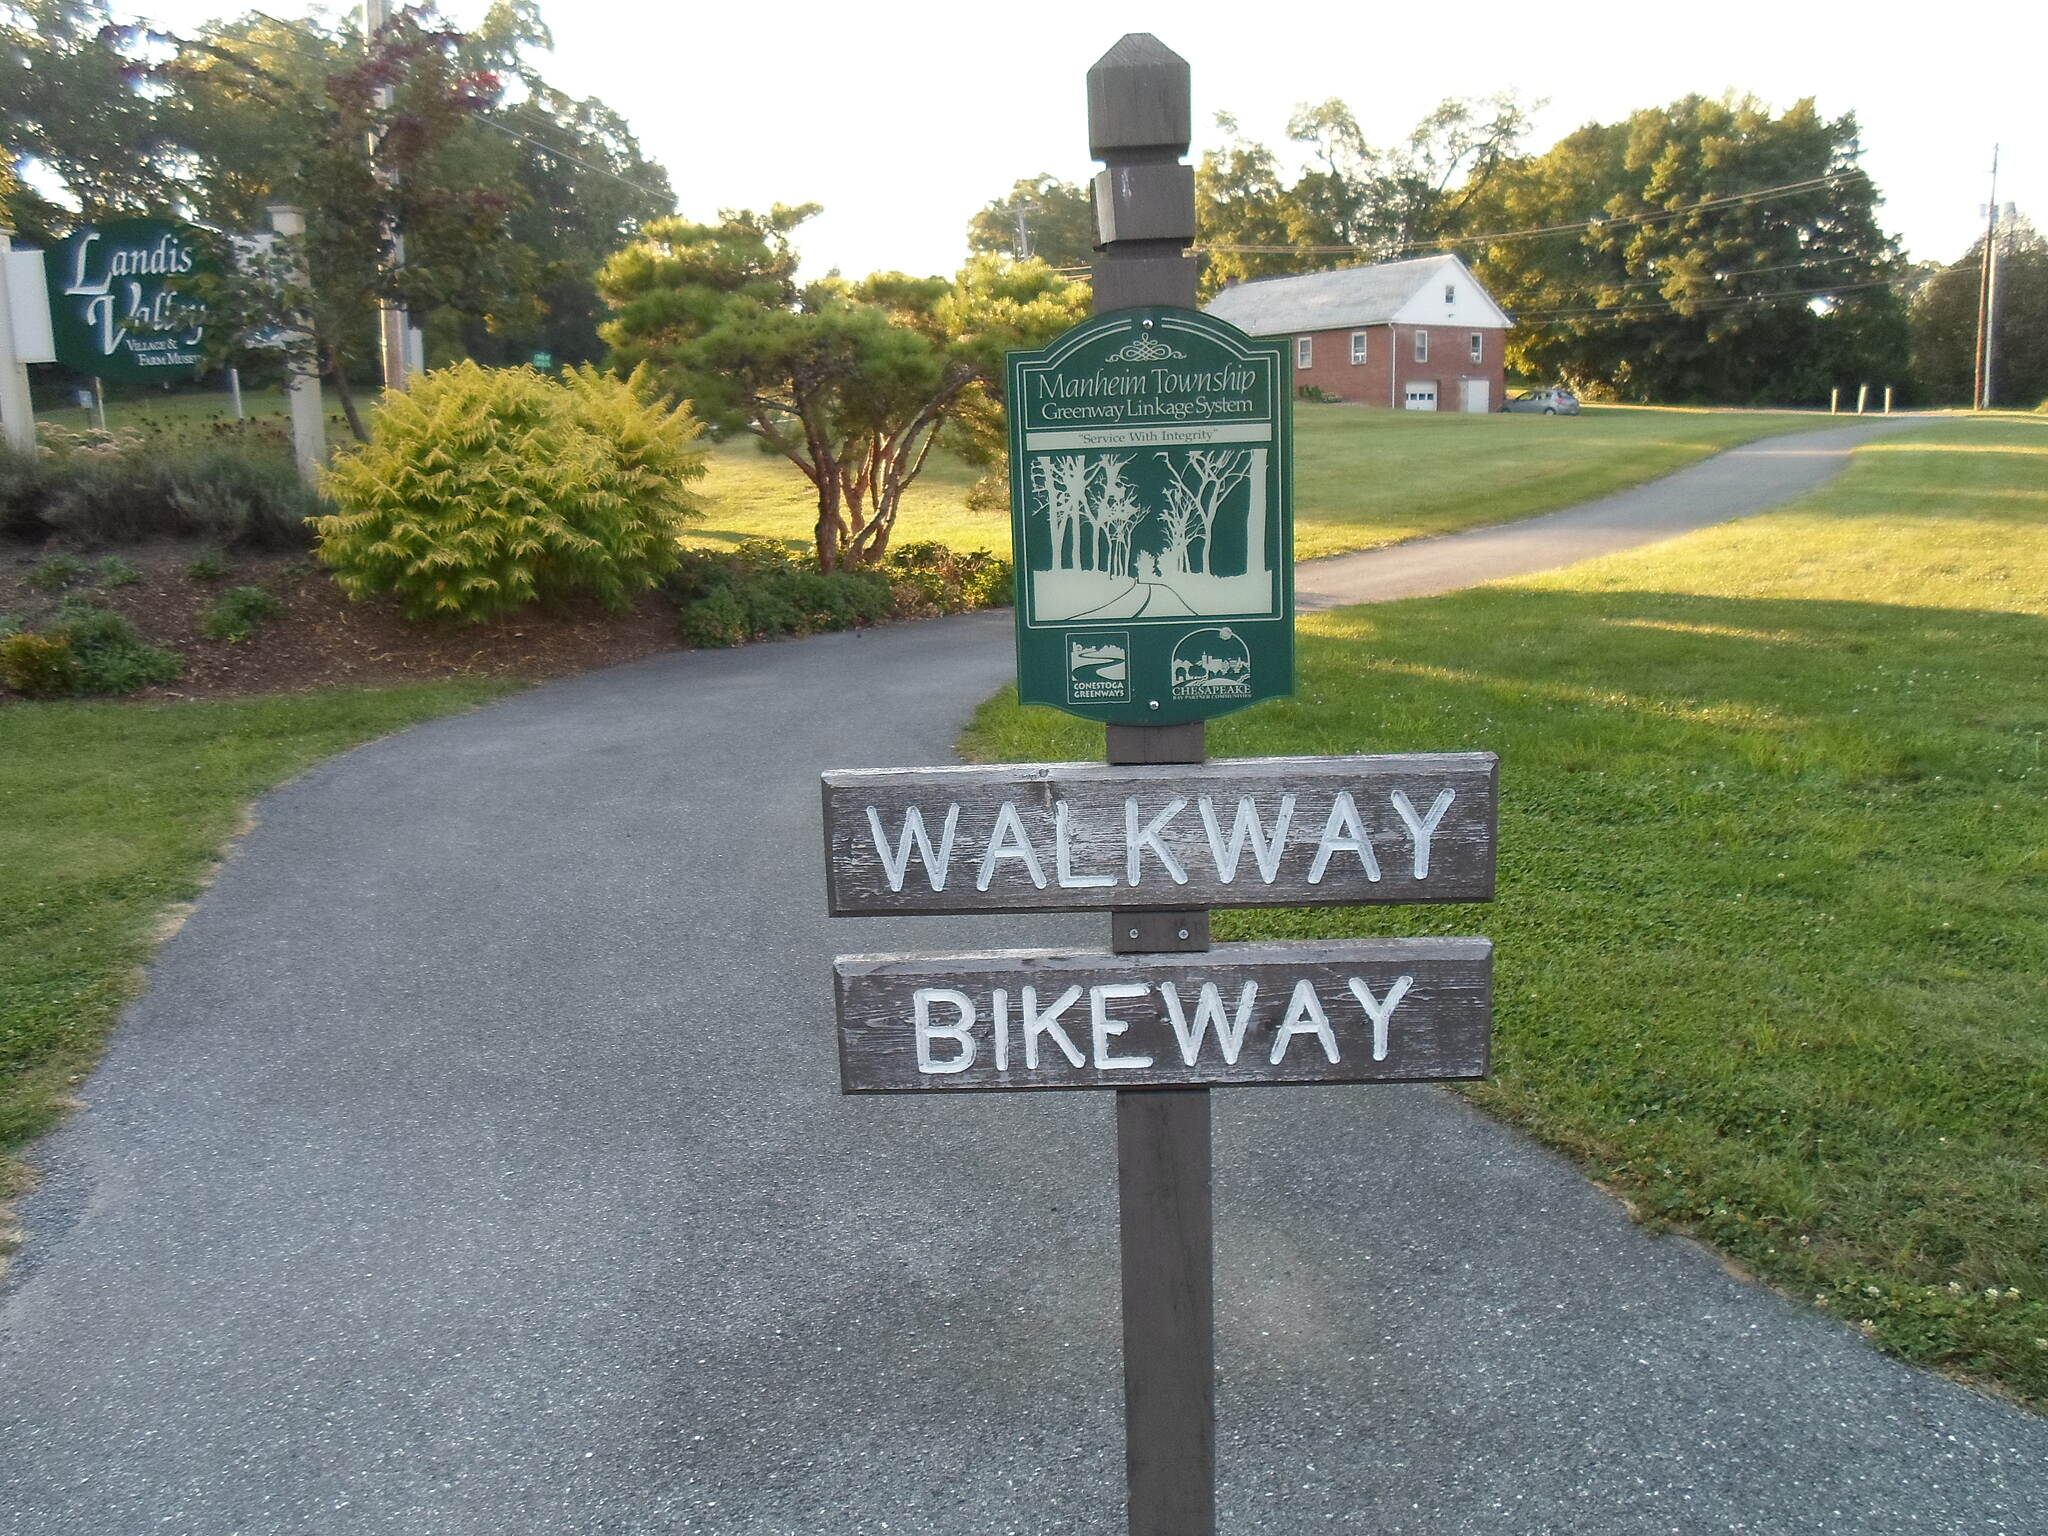 Manheim Township Bikeway Manheim Twp. Bikeway This sign marks the westernmost segment of the trail, which connects the parking lot for the Landis Valley Museum and Hands On House to Kissel Hill Road. Walkers and cyclists can continue further west by following a signed route along local streets.